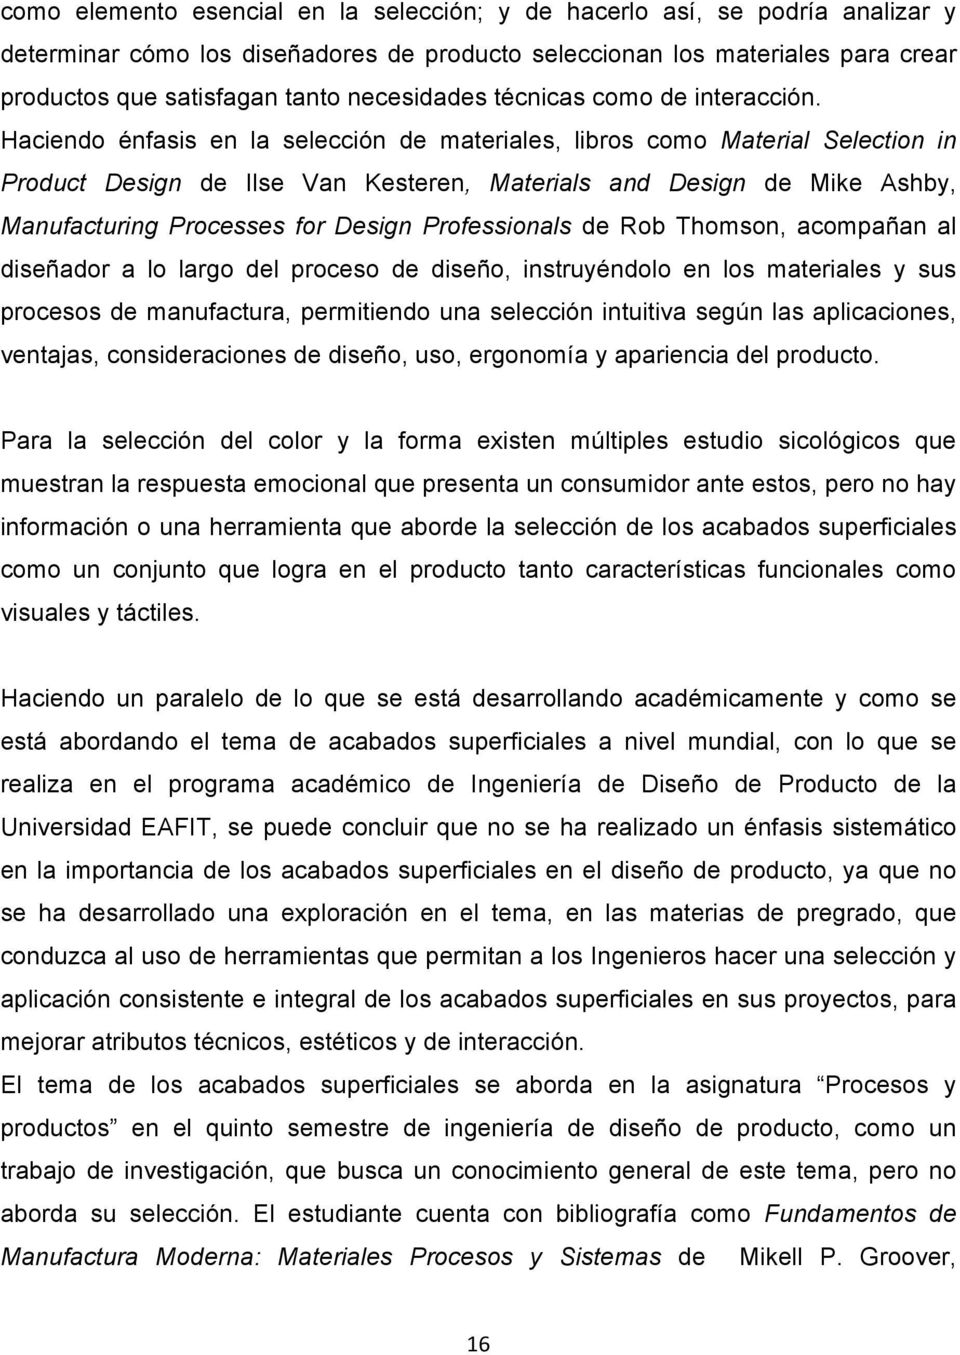 Haciendo énfasis en la selección de materiales, libros como Material Selection in Product Design de Ilse Van Kesteren, Materials and Design de Mike Ashby, Manufacturing Processes for Design